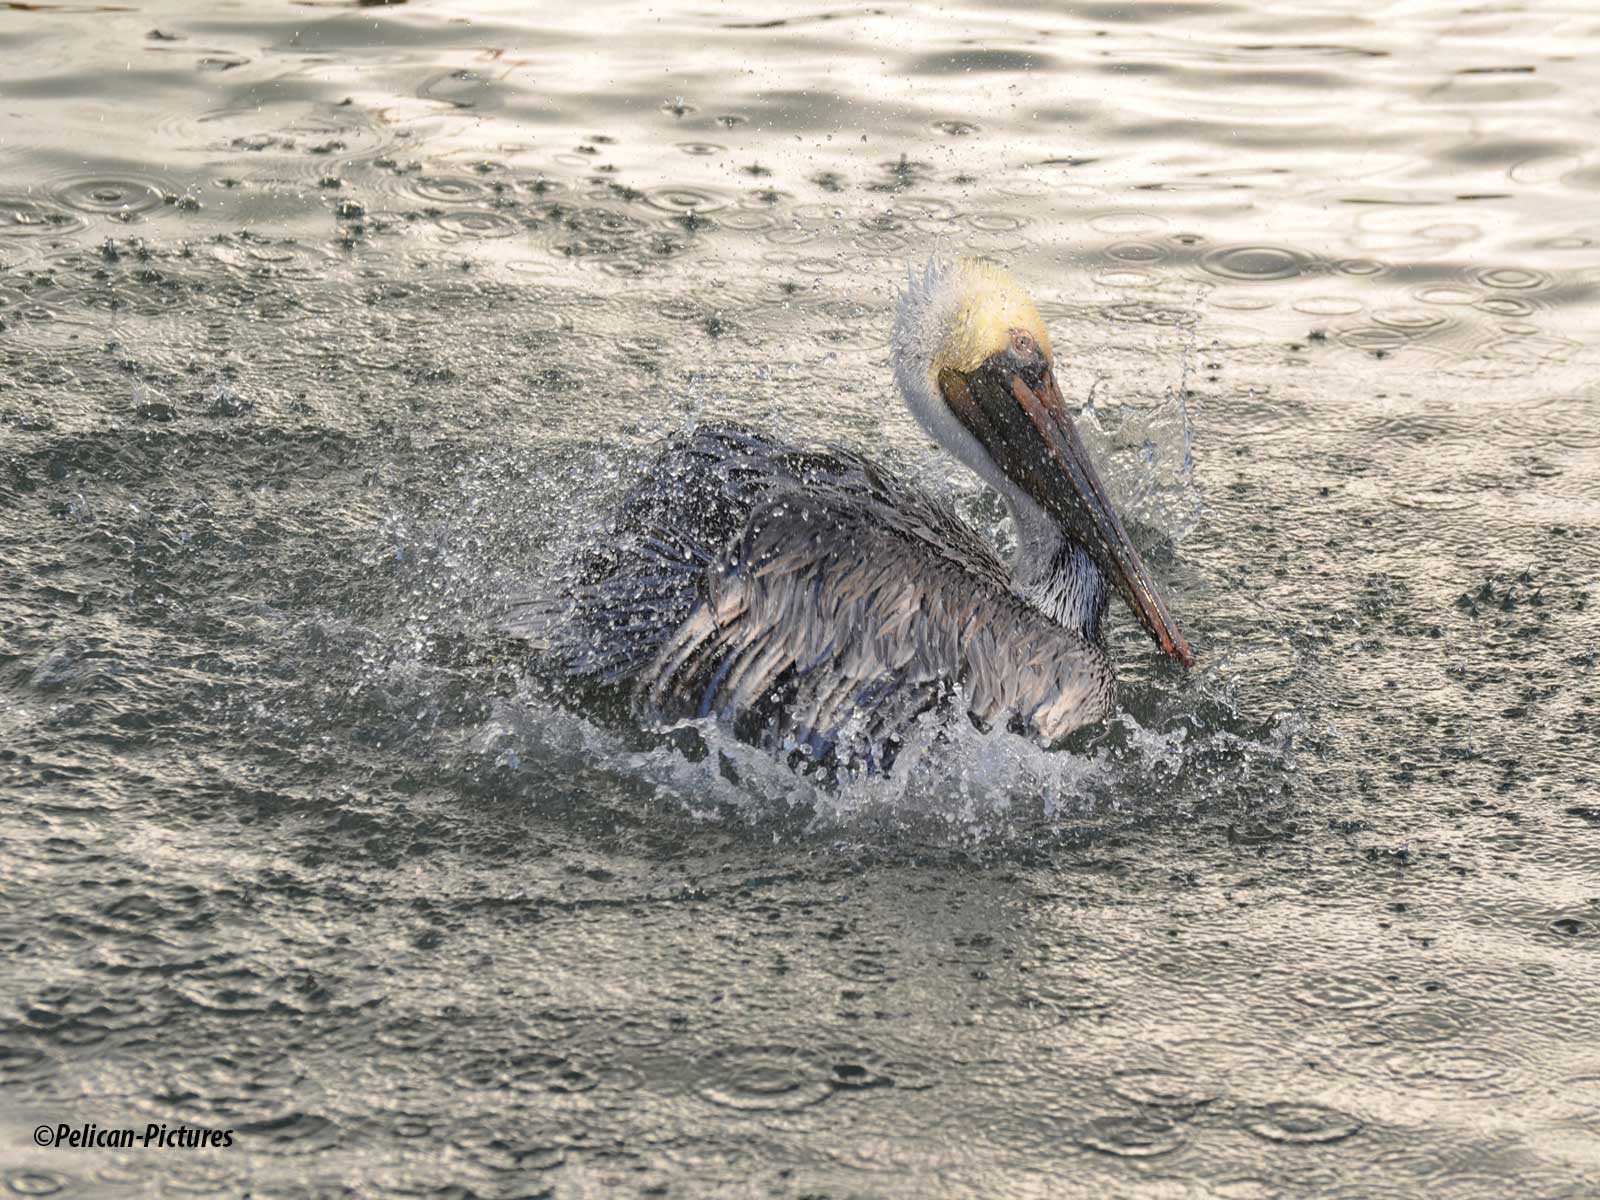 Shaken Not Stirred Pelican-Pictures